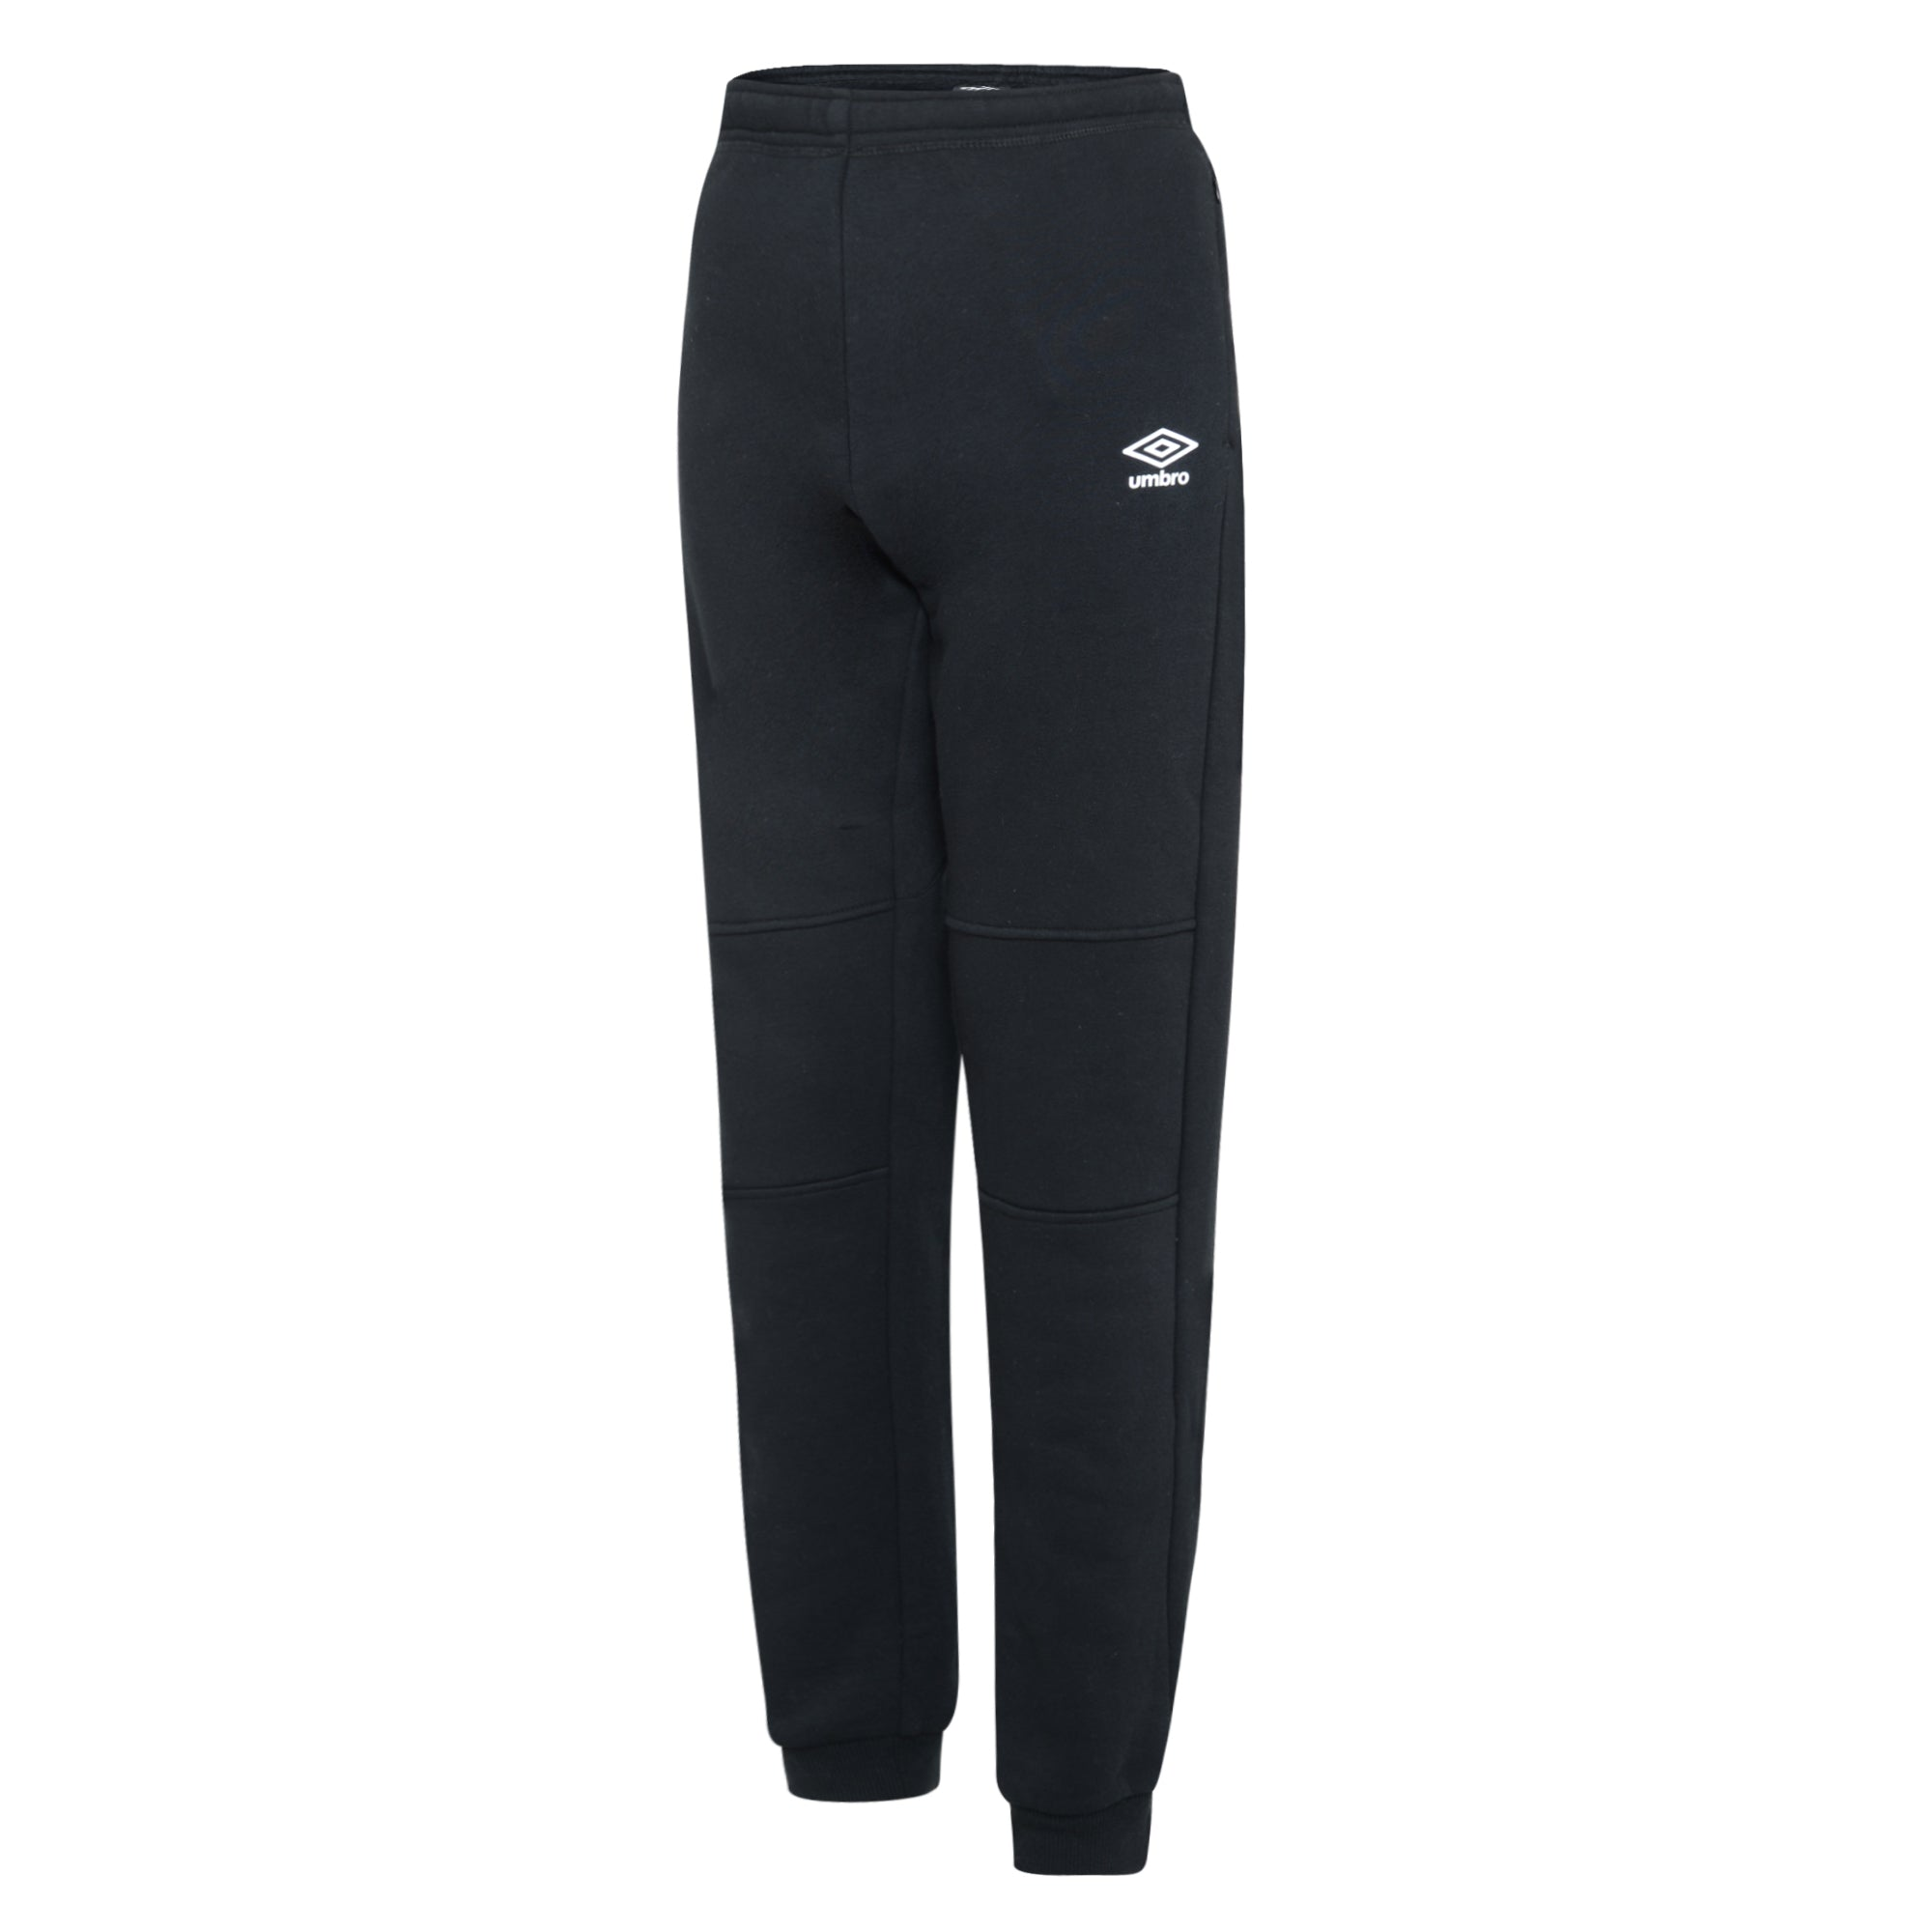 Umbro Club Leisure Women's Jogpants - Black/White